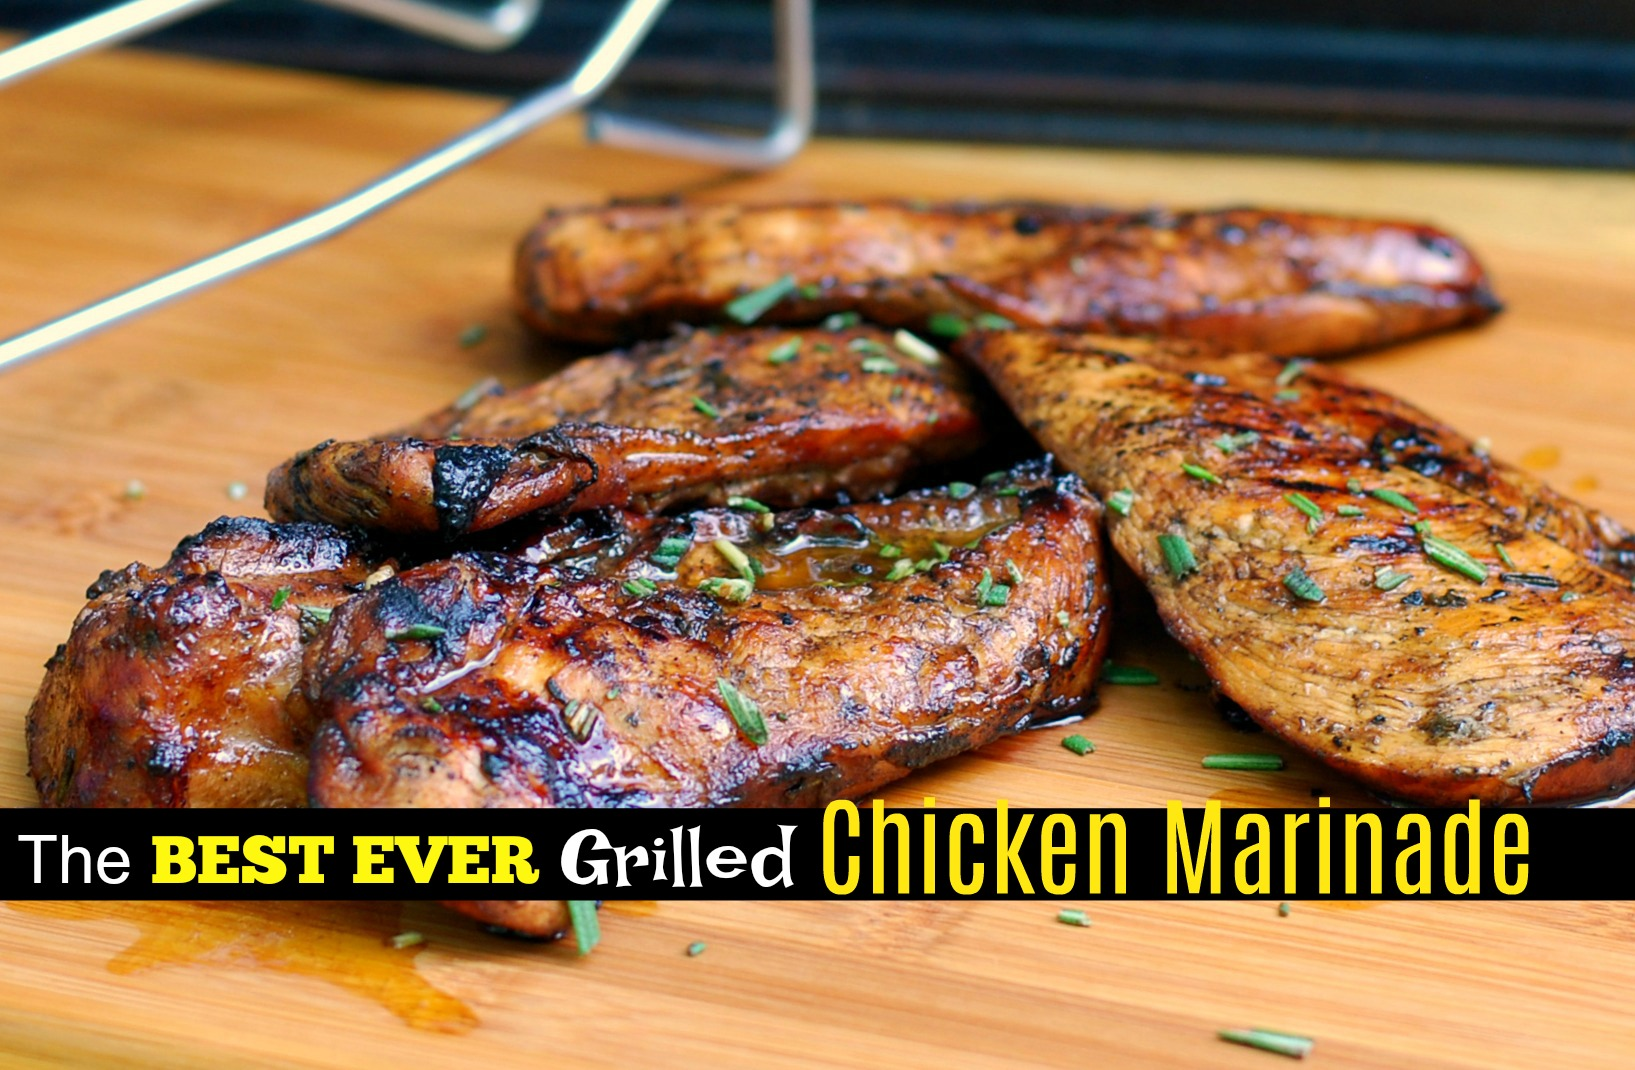 The BEST EVER Grilled Chicken Marinade